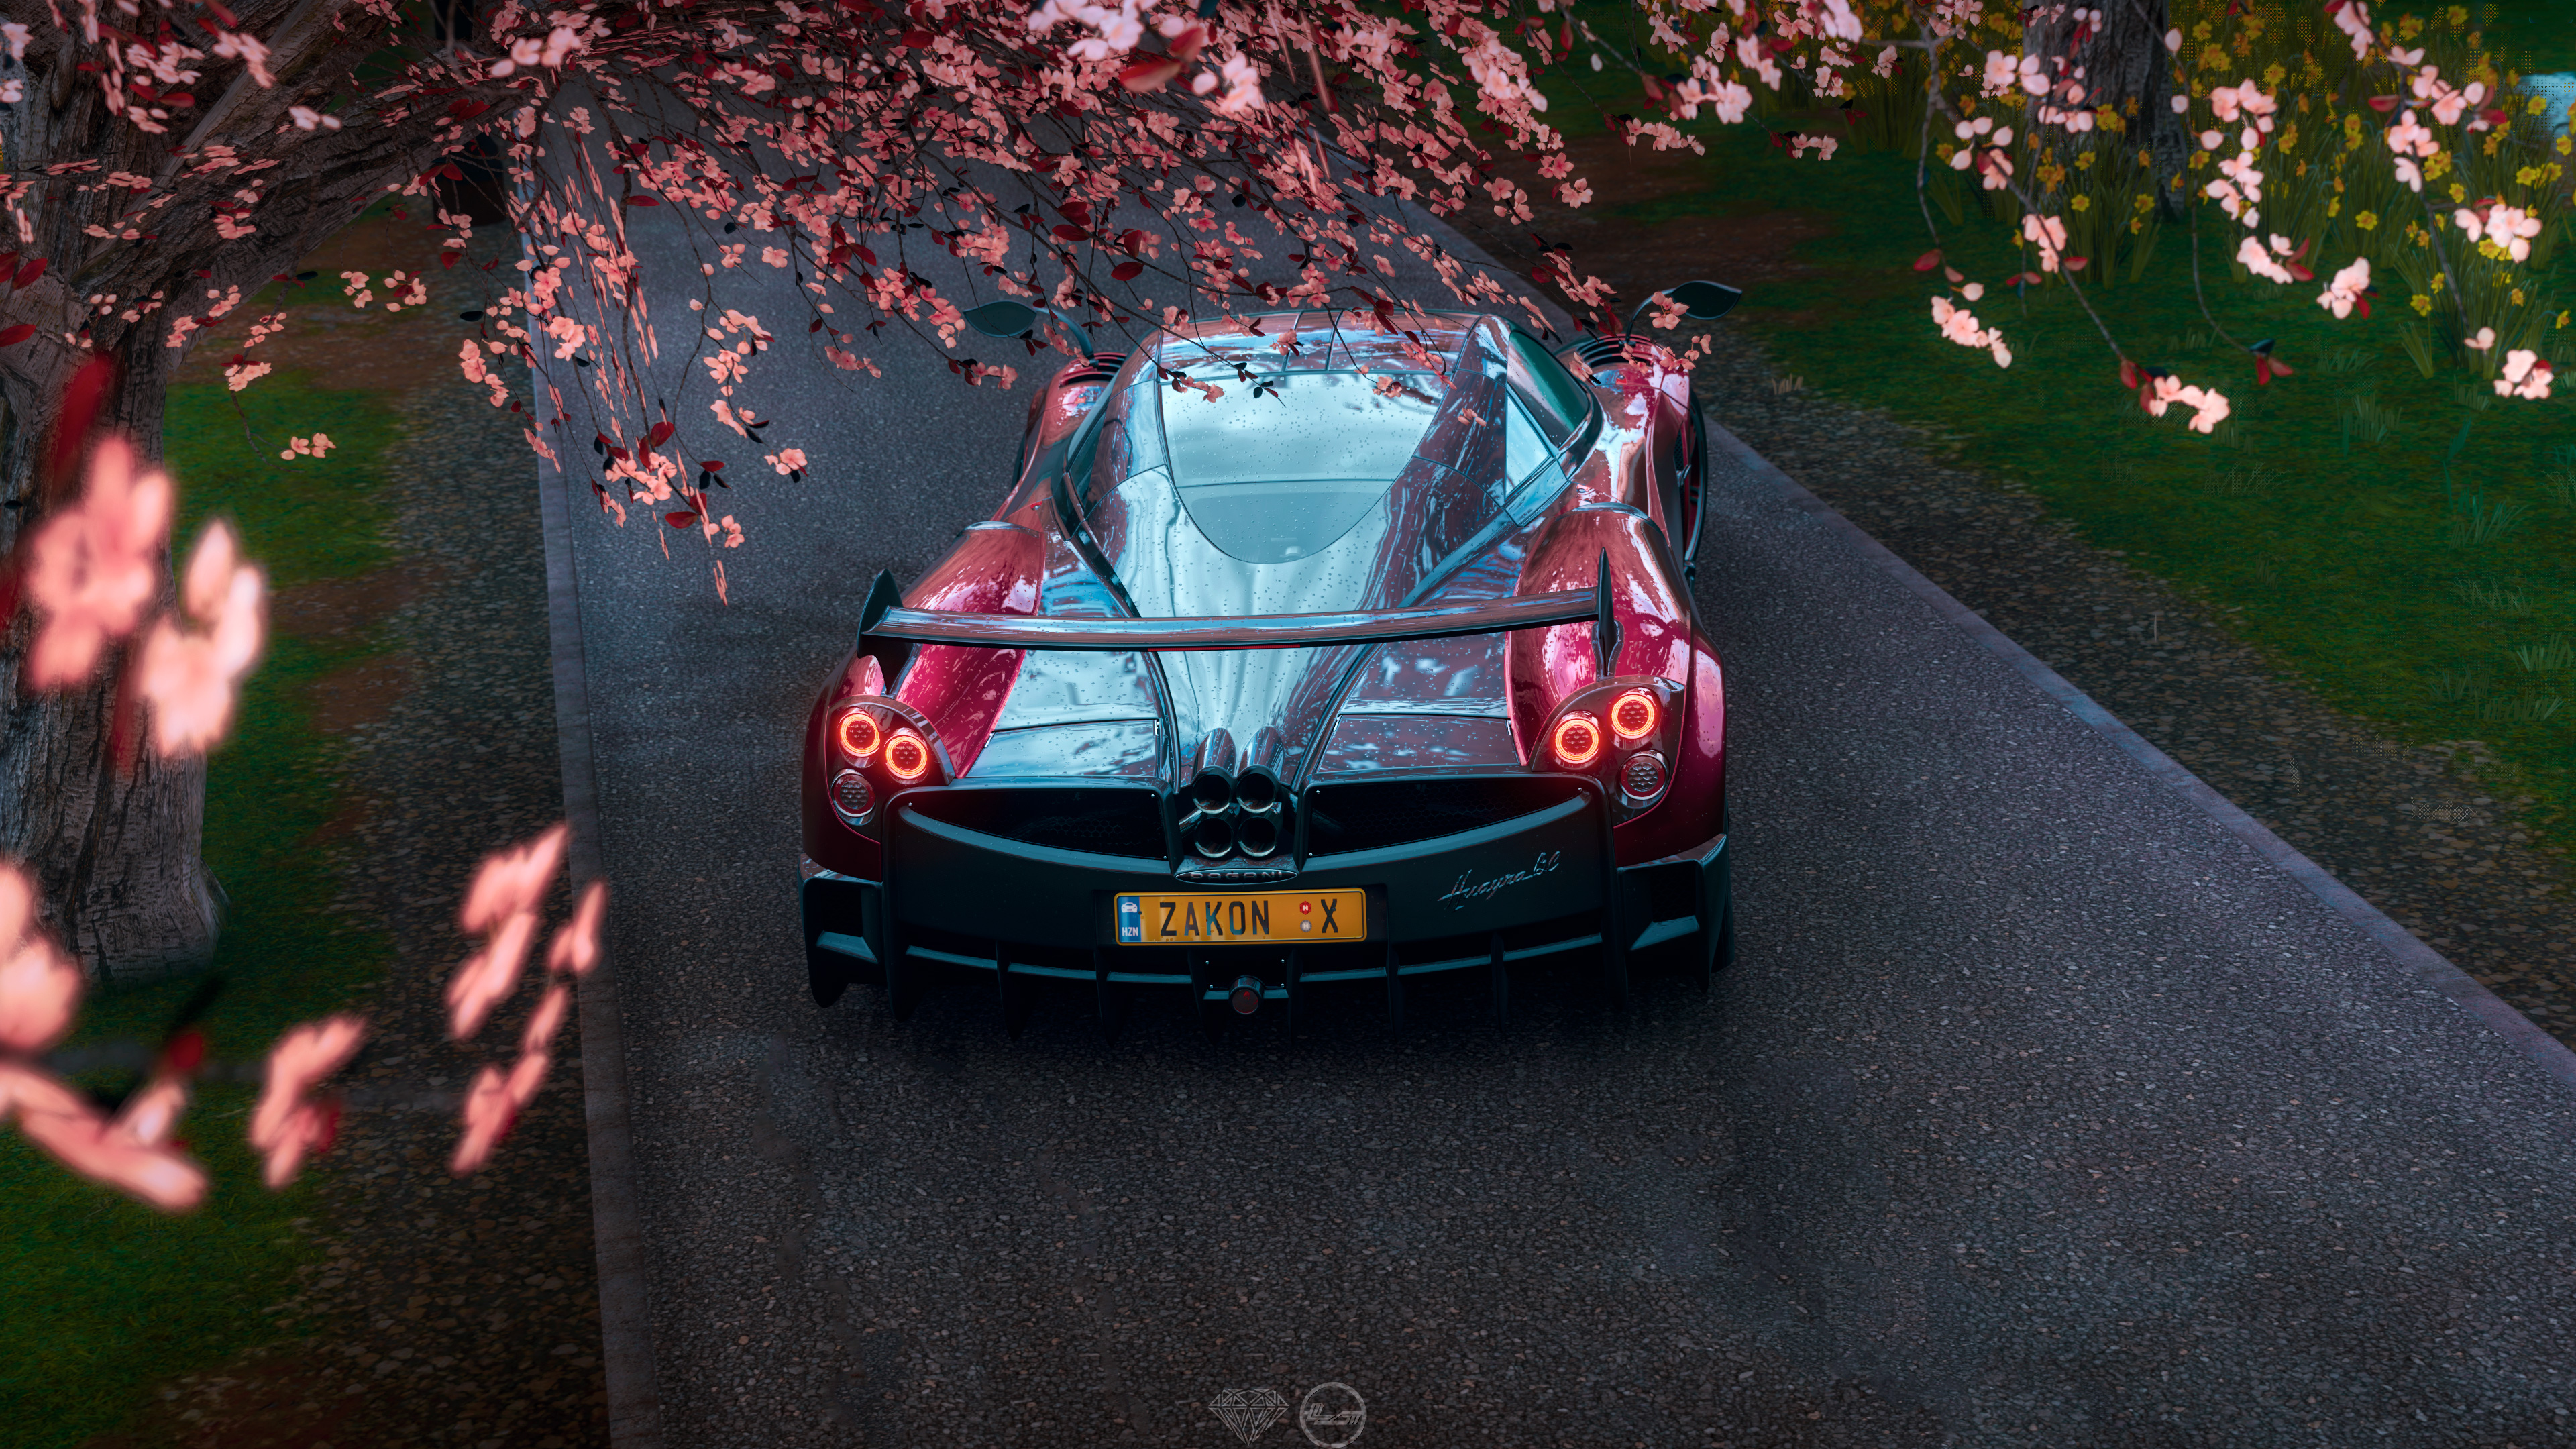 forza horizon 4 pagani zonda 4k 1553074709 - Forza Horizon 4 Pagani Zonda 4k - pagani zonda wallpapers, hd-wallpapers, games wallpapers, forza horizon 4 wallpapers, 4k-wallpapers